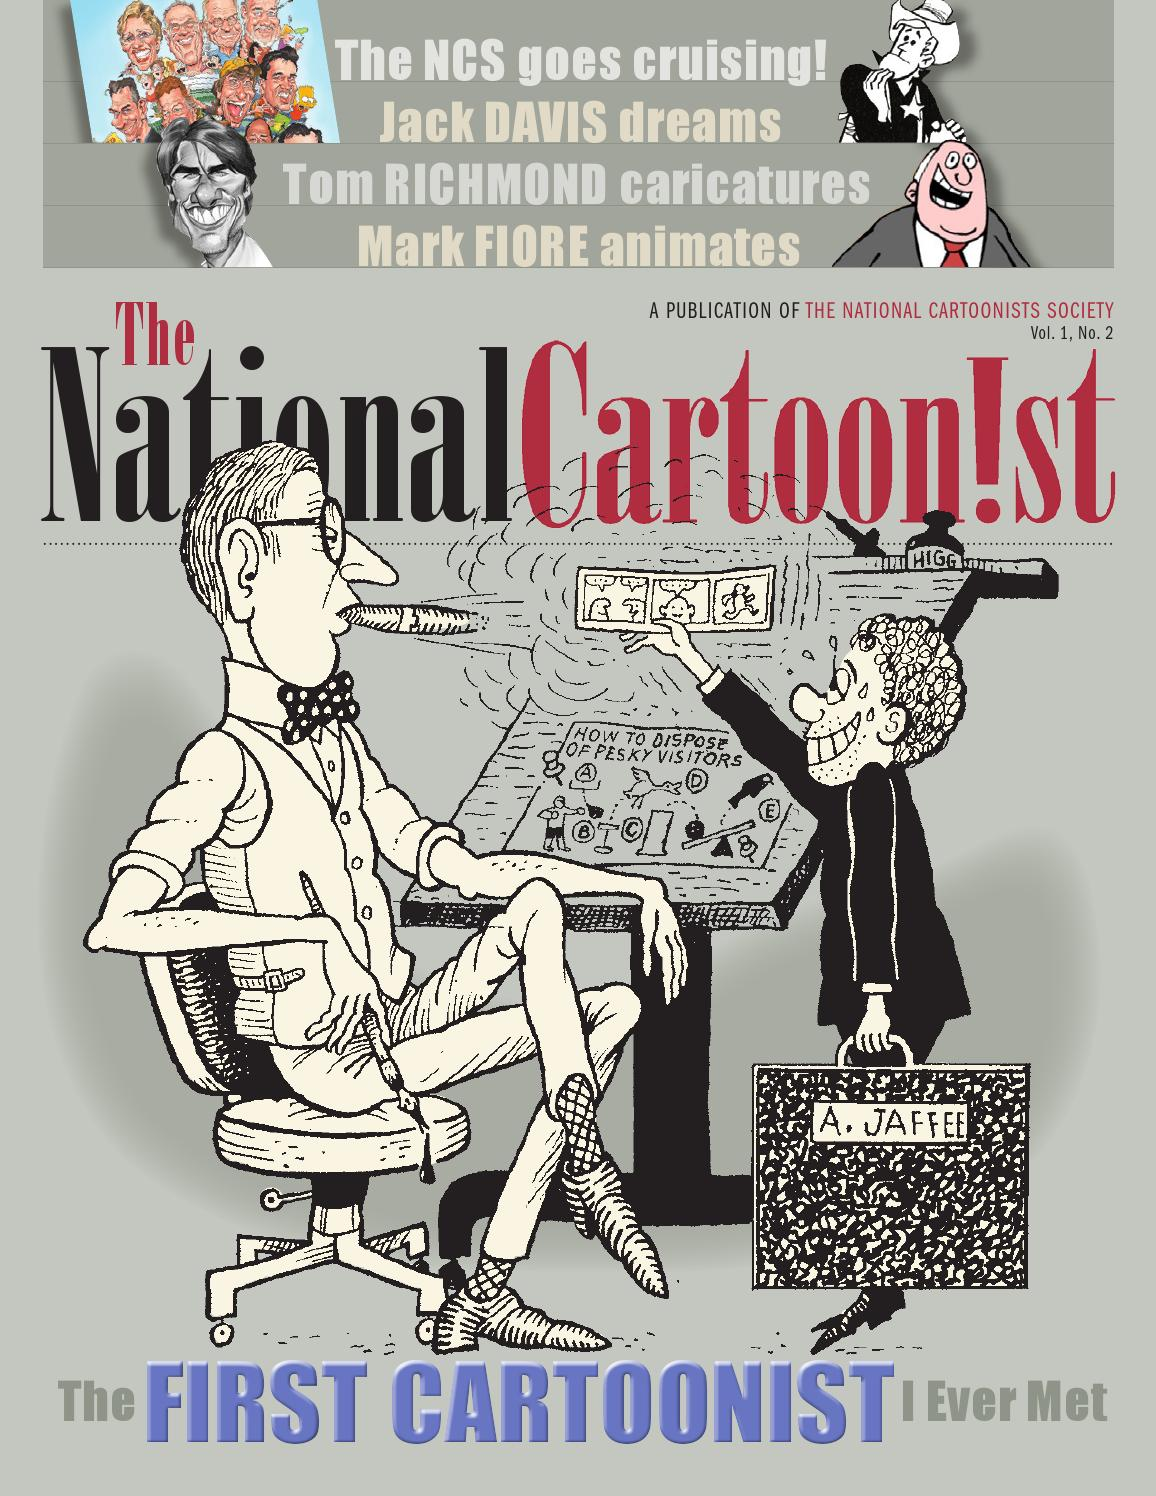 The National Cartoon!st Issue 2 by National Cartoonists Society - issuu